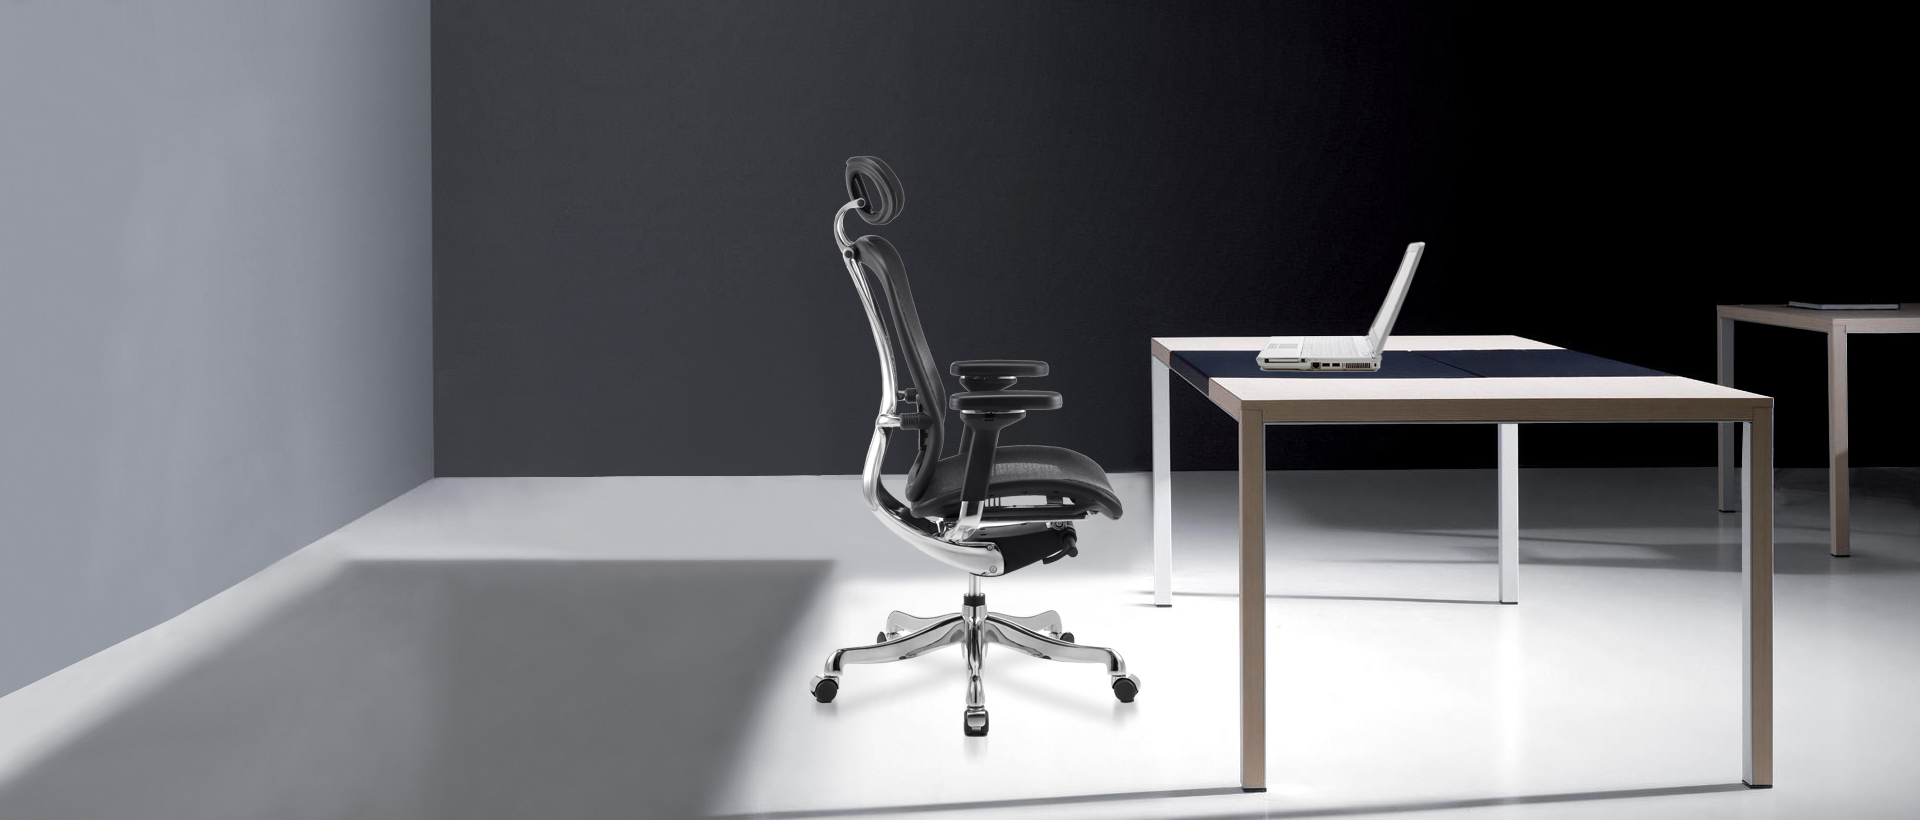 Gavee Official Website Focusing On High End Computer Chair